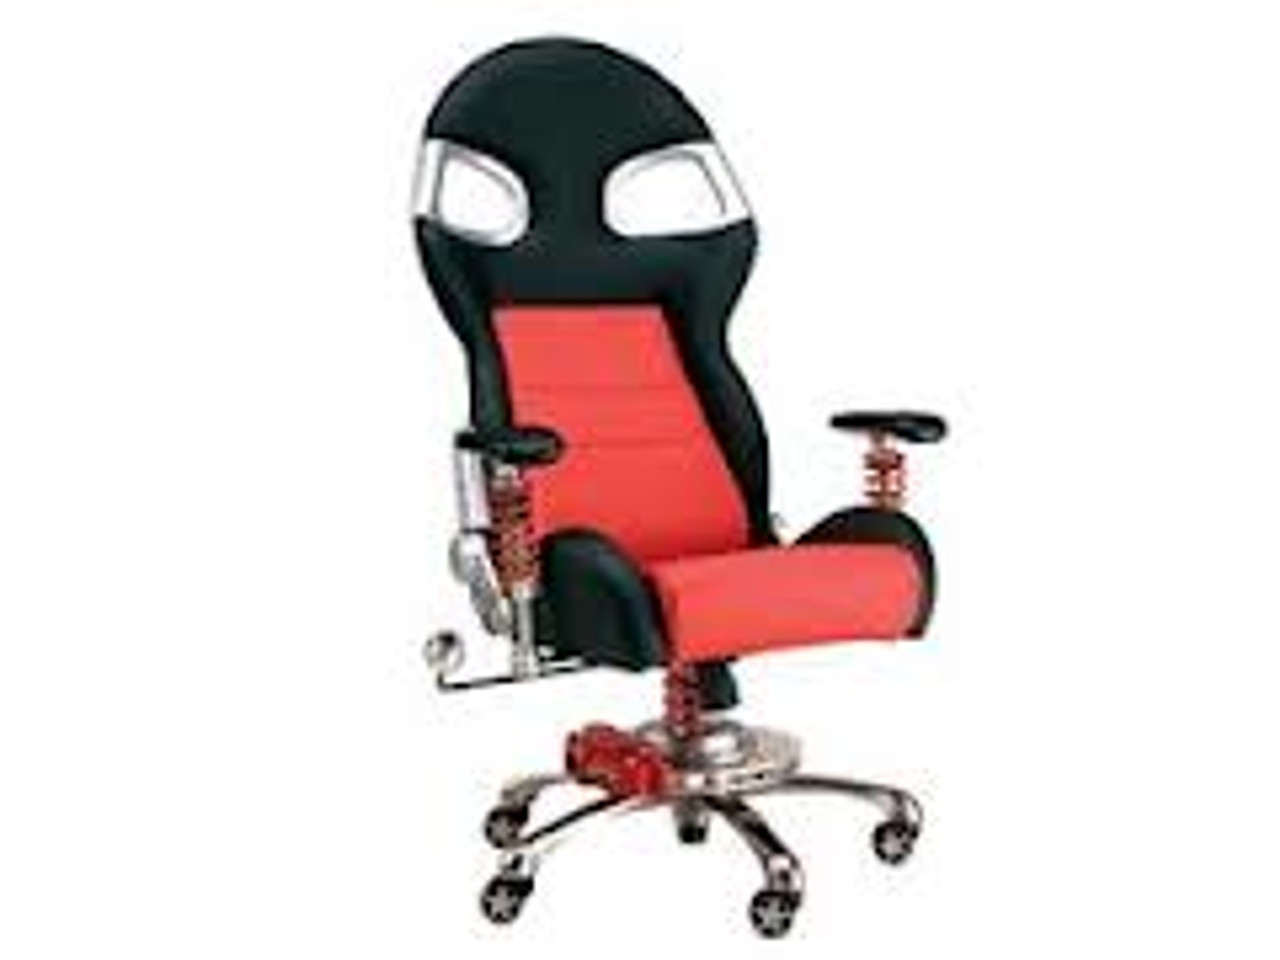 Intro-Tech Automotive PitStop Formula One Series Chair (FO8000R)